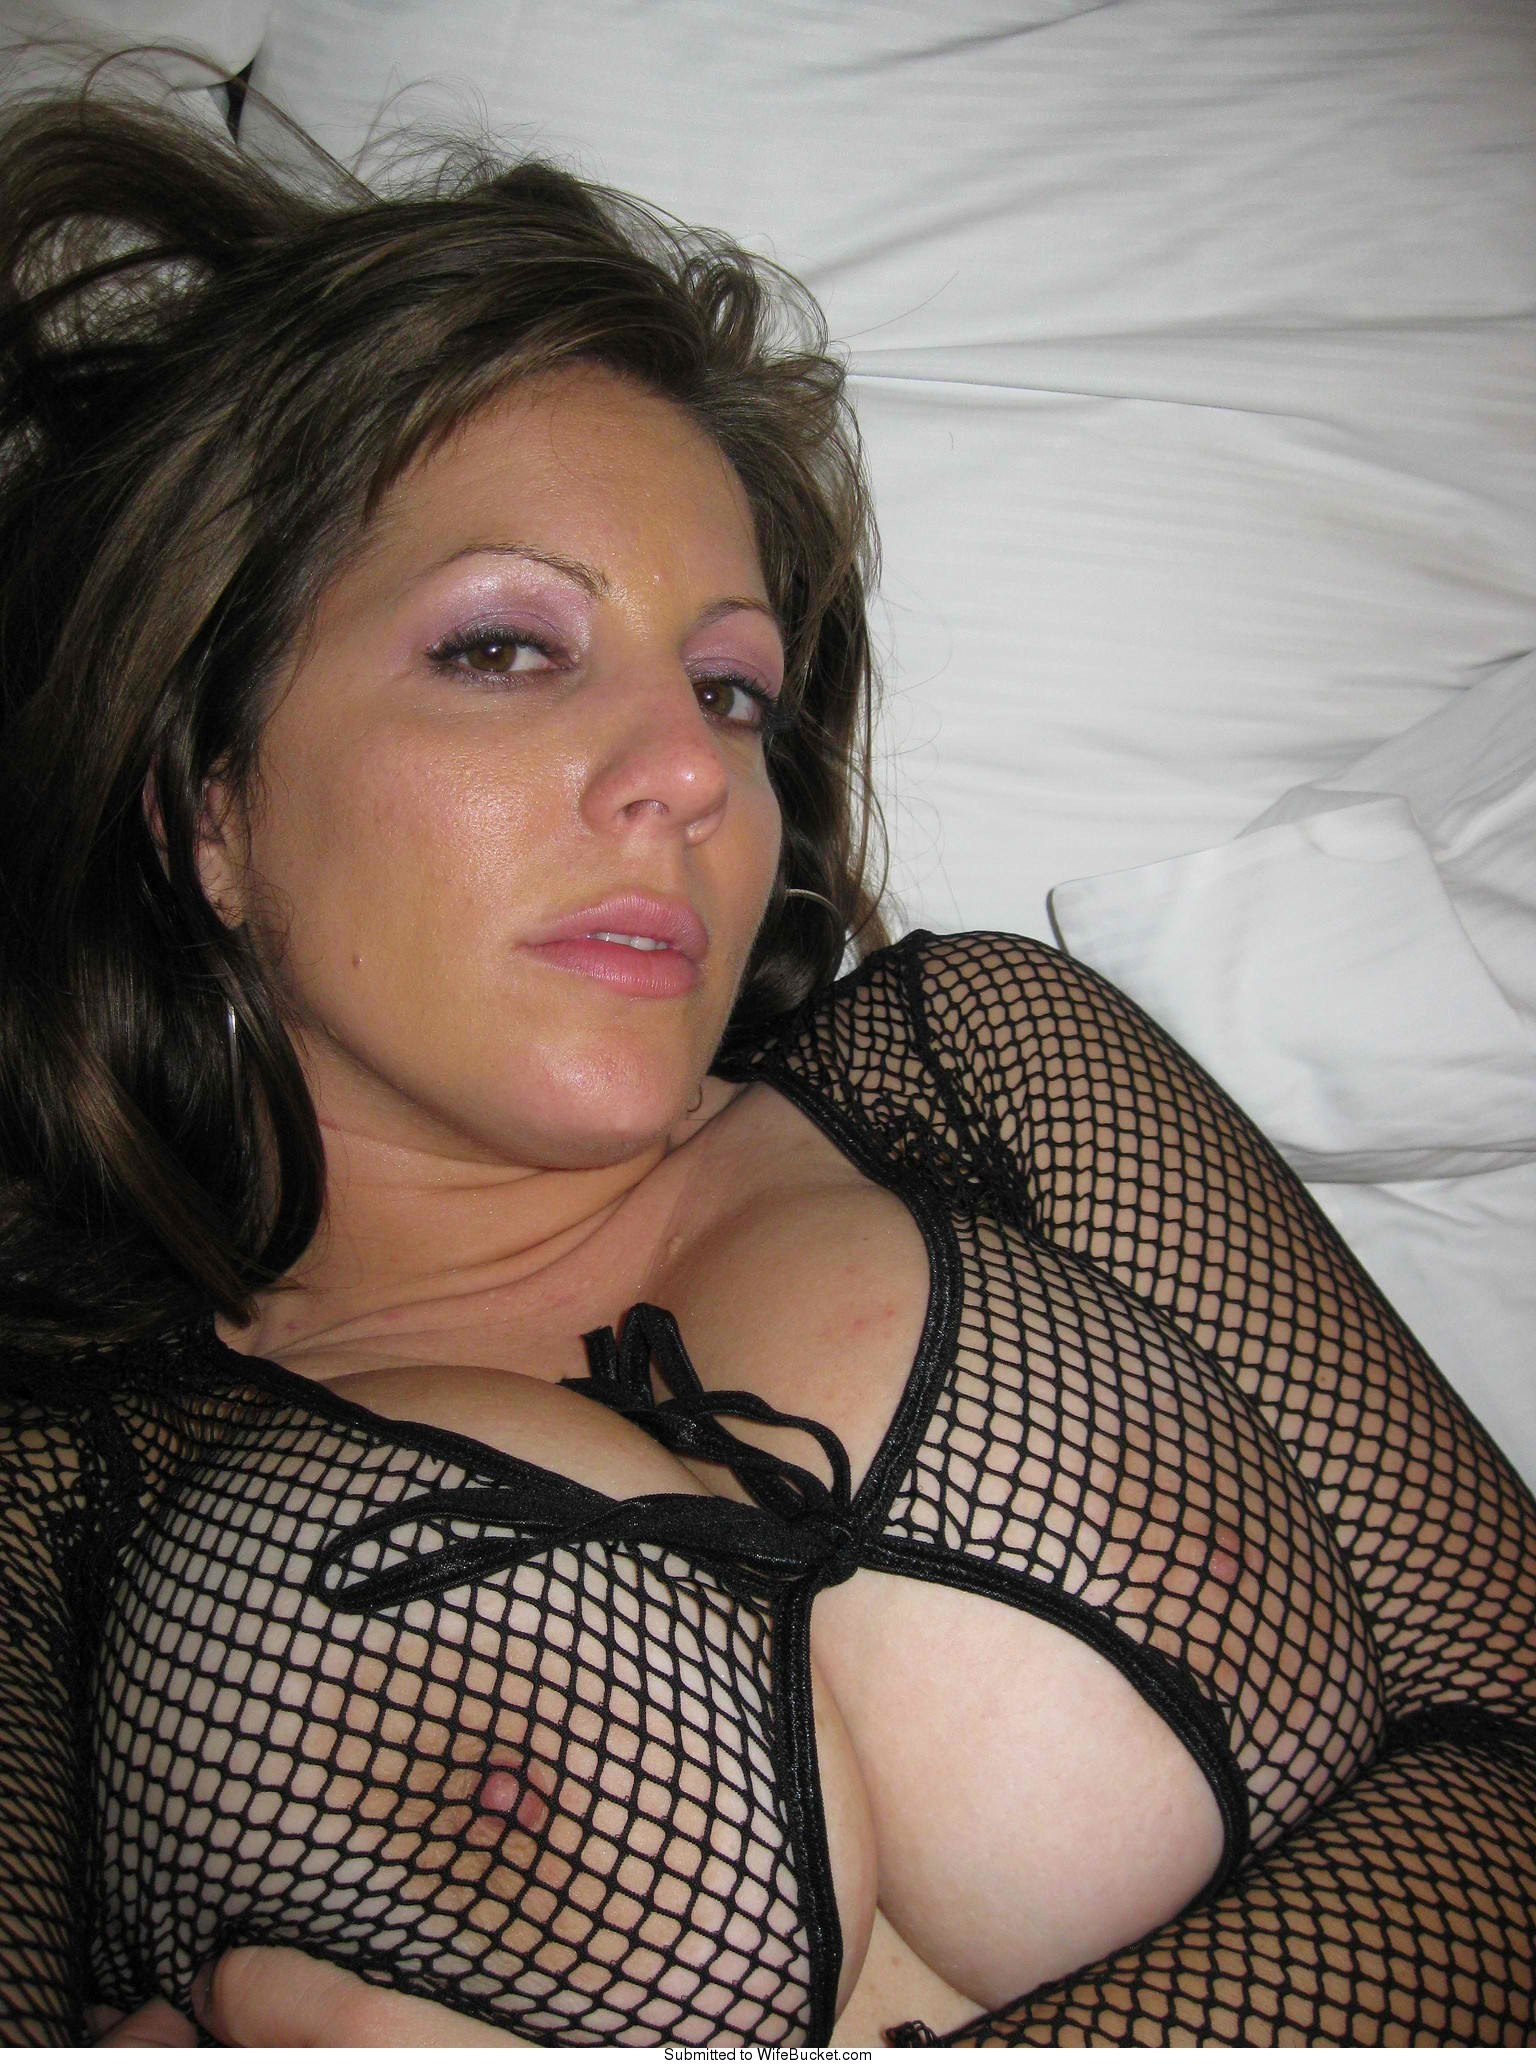 Nudes of a real MILF wife